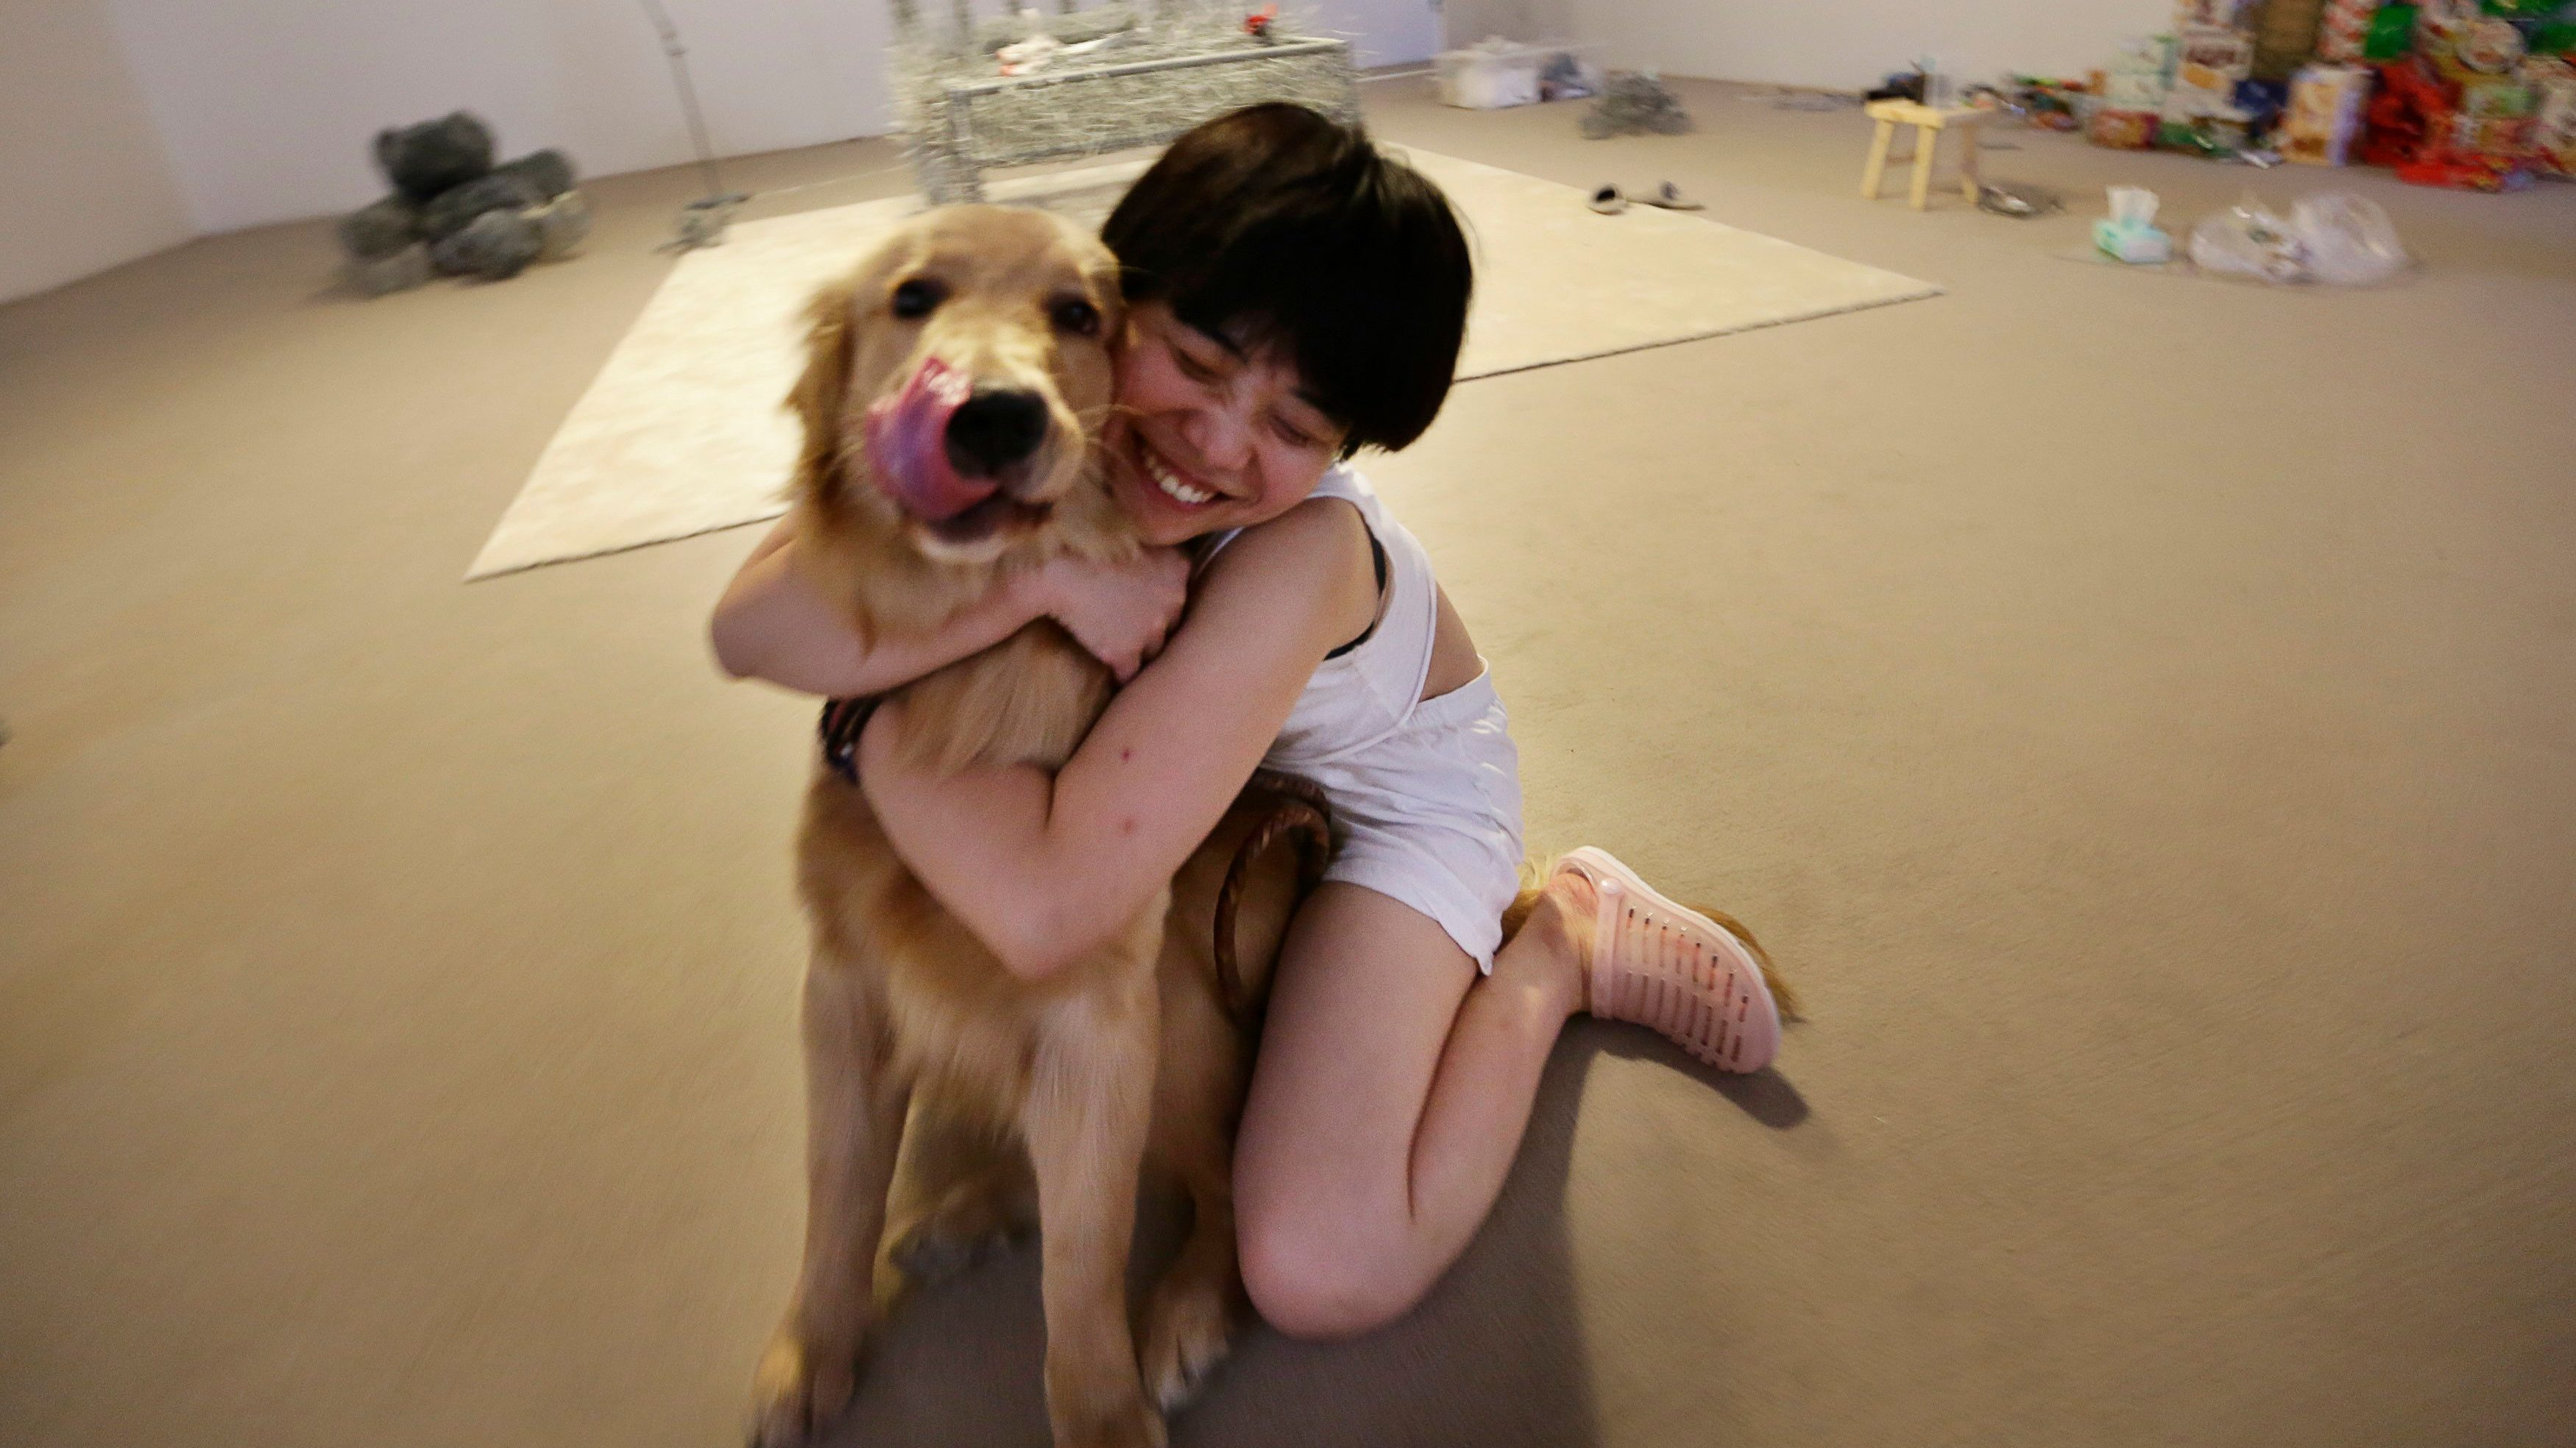 "Chinese artist Zhou Jie hugs her pet dog Dan Dan, which visited her, at Beijing Art Now Gallery, in Beijing August 11, 2014. Zhou started her art project titled ""36 Days"" on August 9, in which she would live inside an exhibition hall with an unfinished iron wire bed, some iron wire sculptures in the shape of stuffed animal dolls, a certain amount of food and her mobile phone for 36 days. According to Zhou, the entire process is open to visitors and she may also interact with them. Picture taken August 11, 2014."